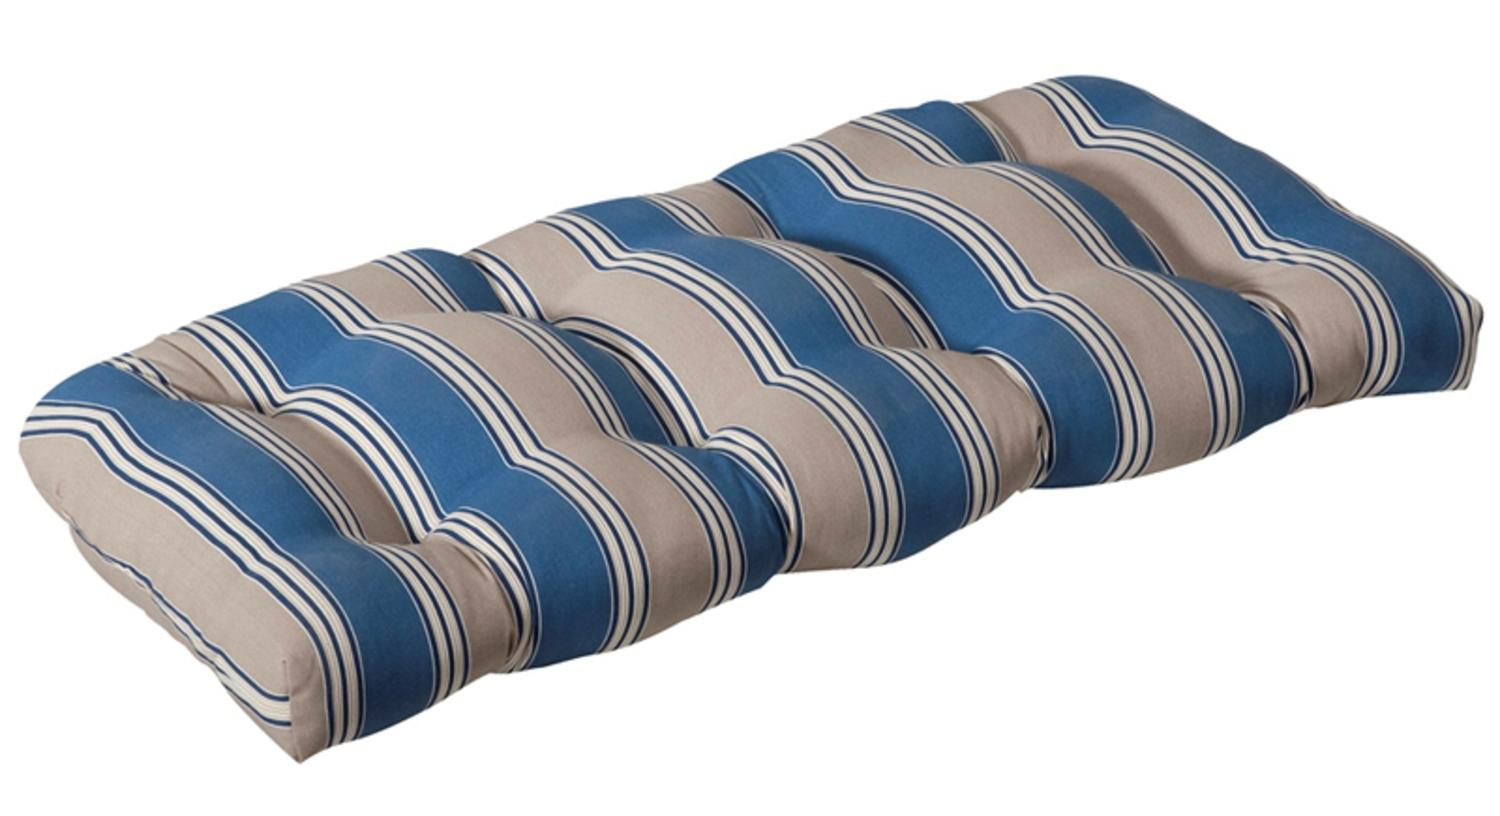 Outdoor Patio Furniture Wicker Loveseat Cushion   Blue U0026 Tan Stripe